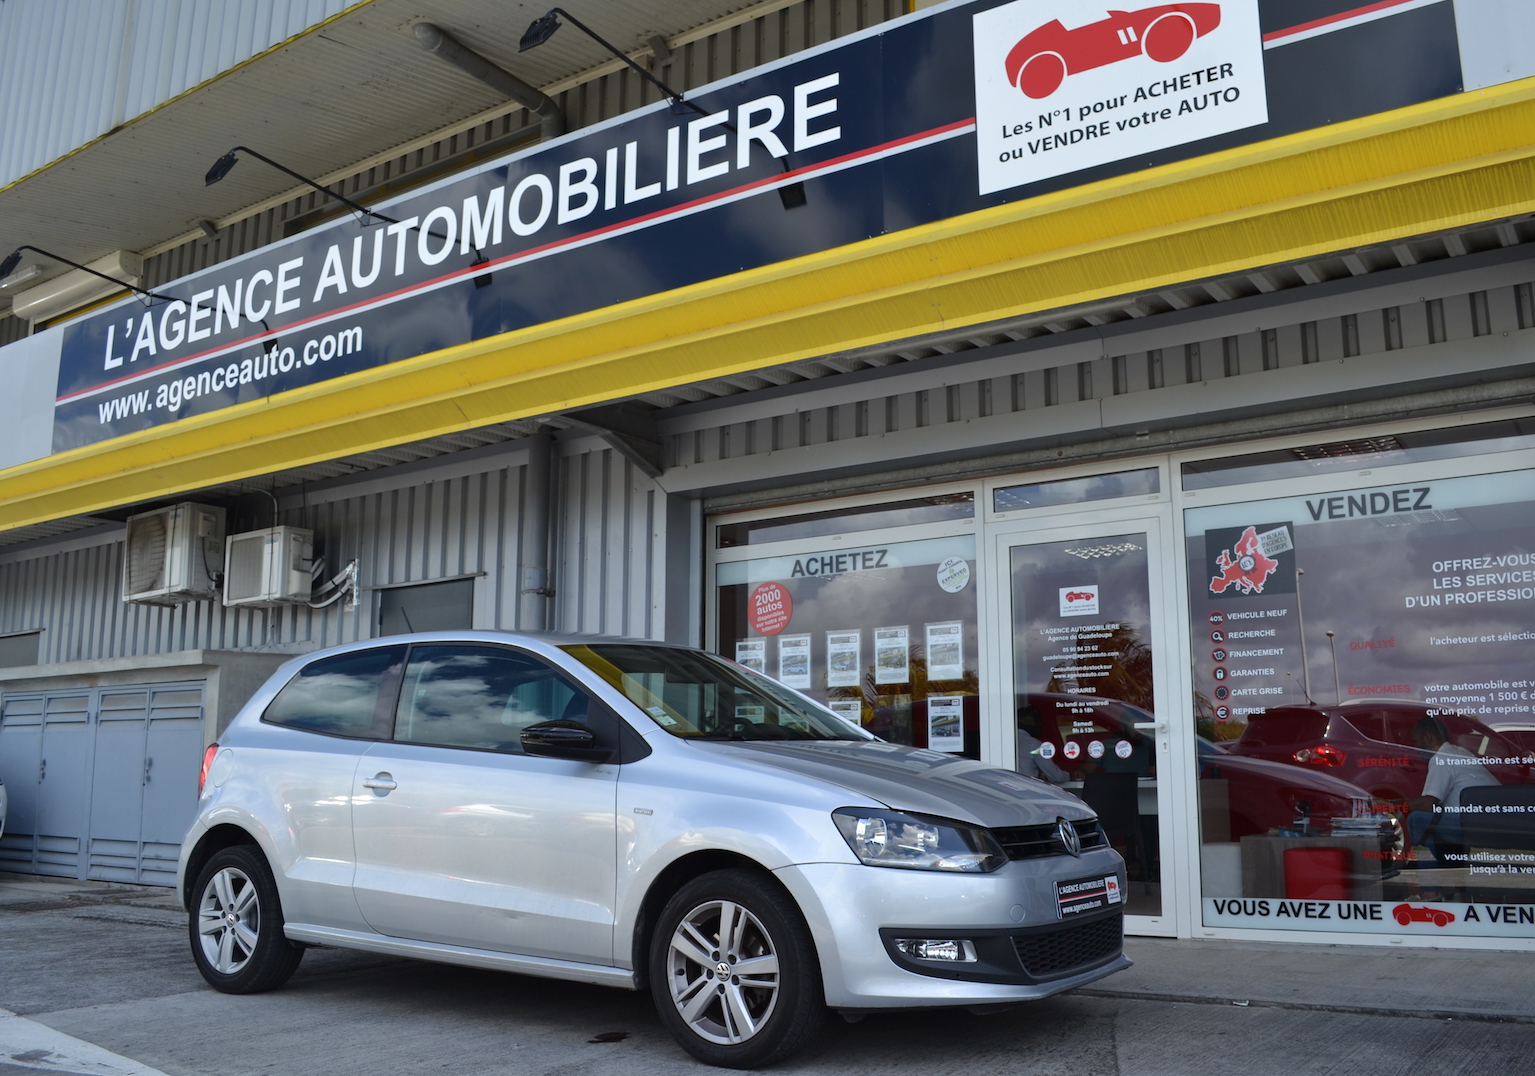 Volkswagen Polo 1.2 60 / Match occasion Guadeloupe